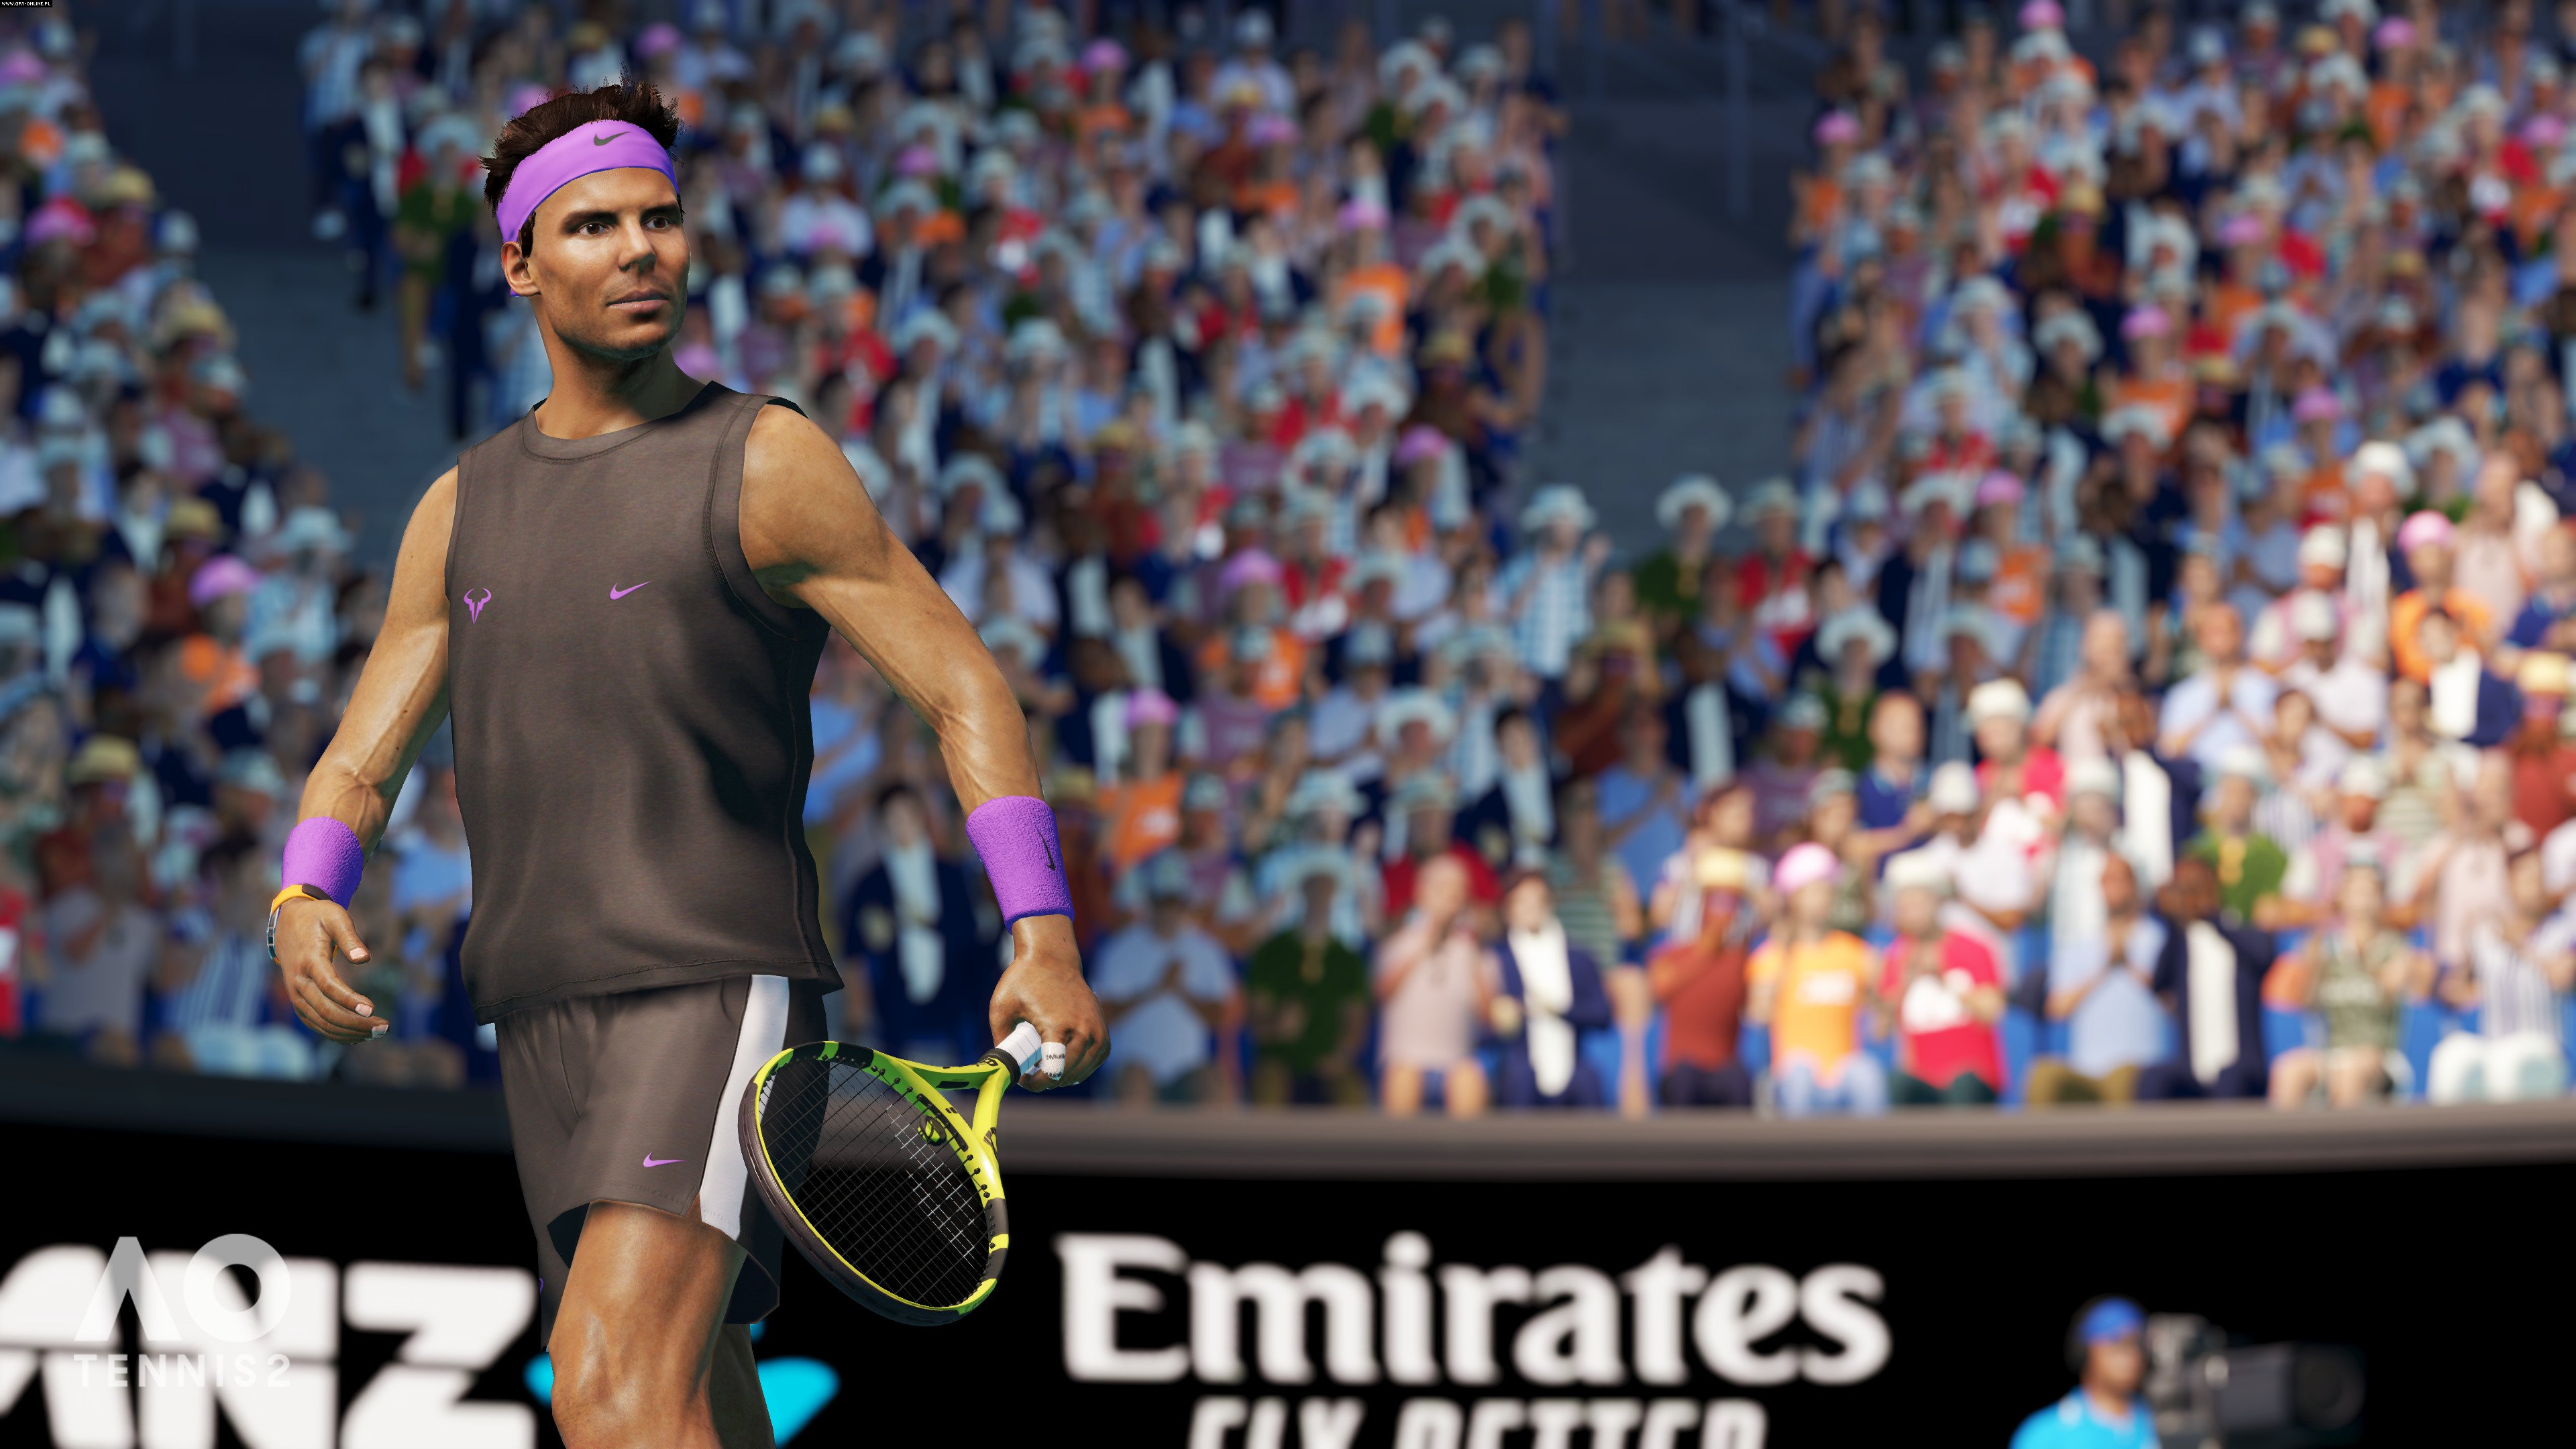 AO Tennis 2 PC, PS4, XONE, Switch Gry Screen 4/9, Big Ant Studios, Bigben Interactive